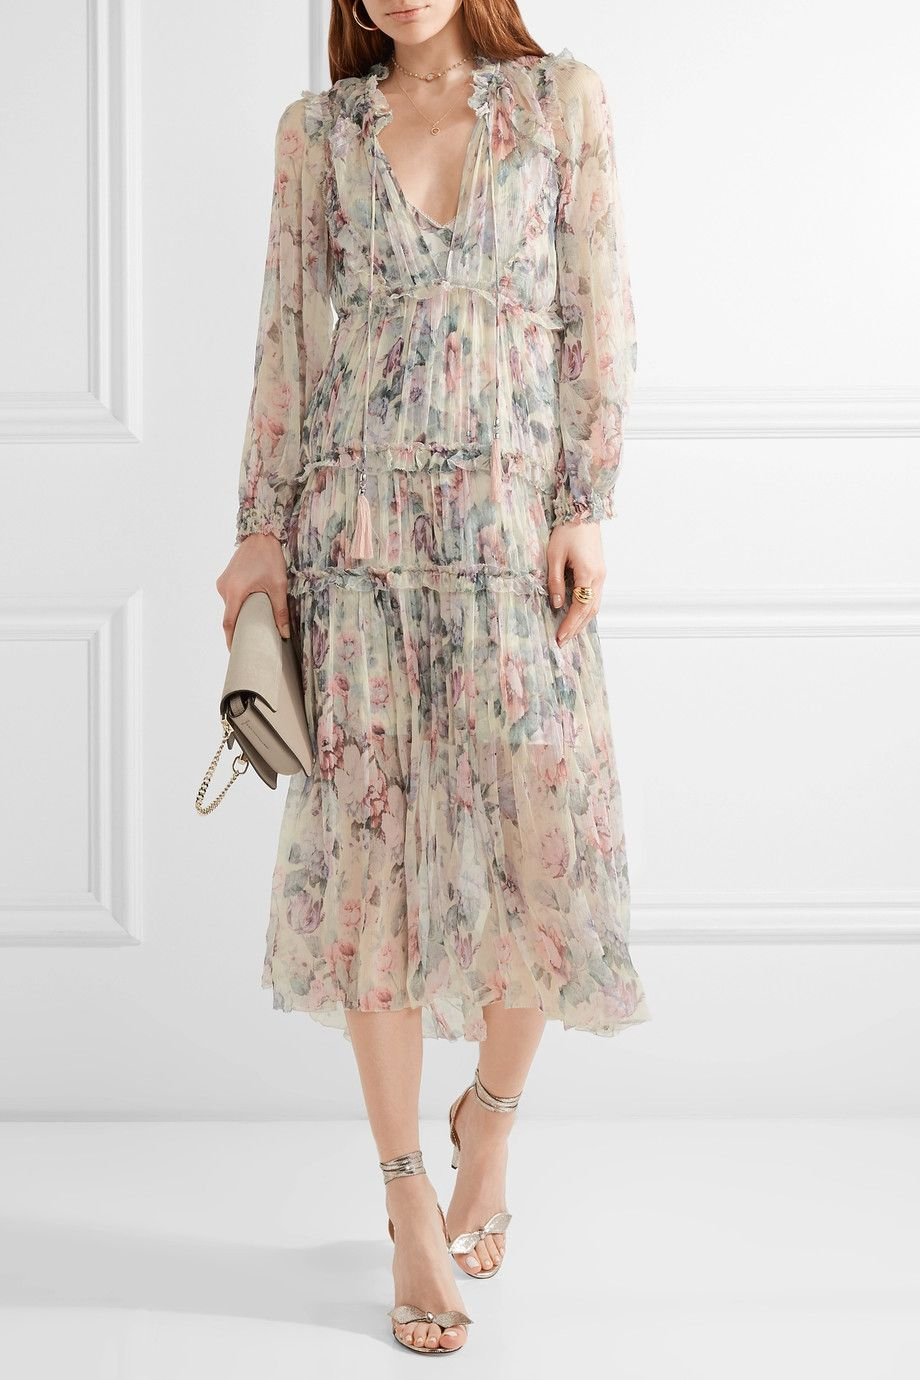 6f61bc24fb2 zimmermann Zimmermann, Floral Midi Dress, Ruffle Trim, Ruffles, Silk Dress,  Dress